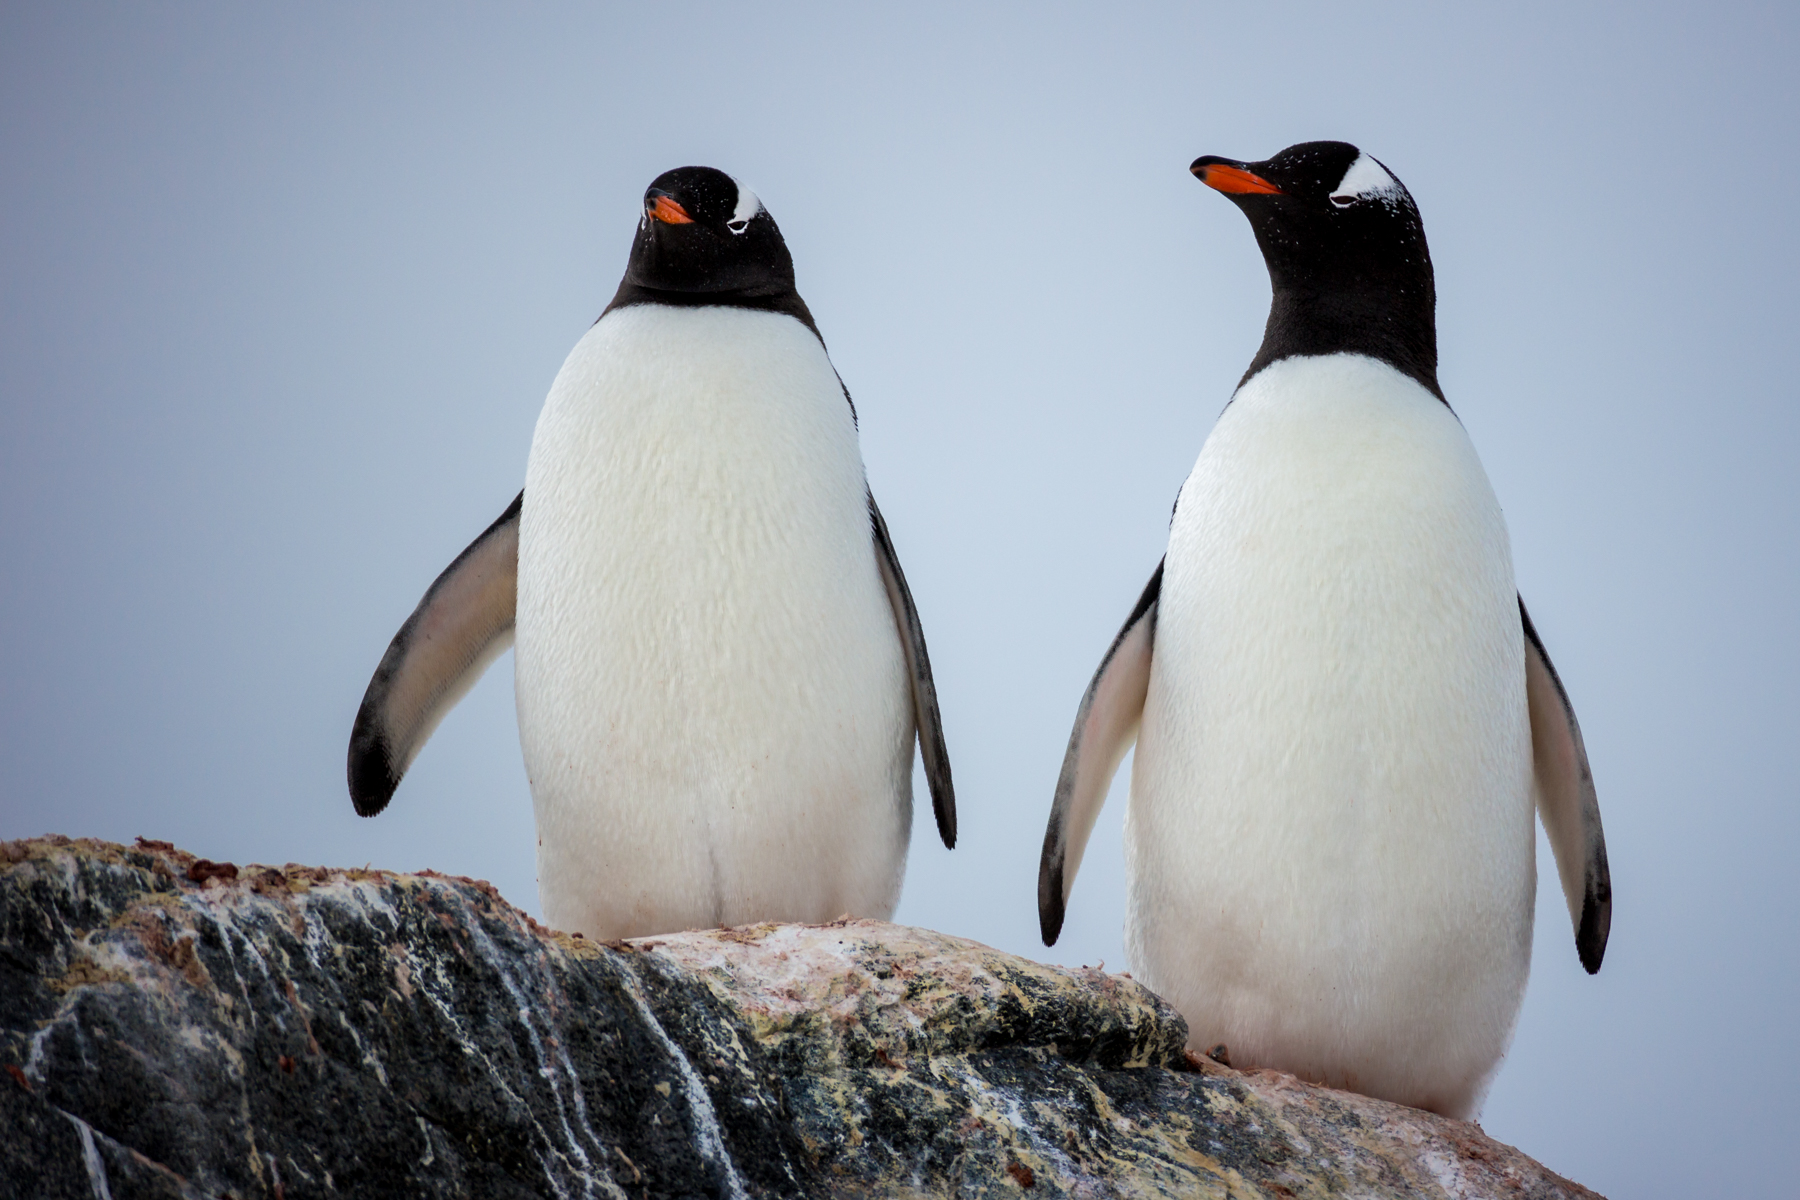 photo essay antarctic penguins antarctica a pair of gentoo penguins survey the land